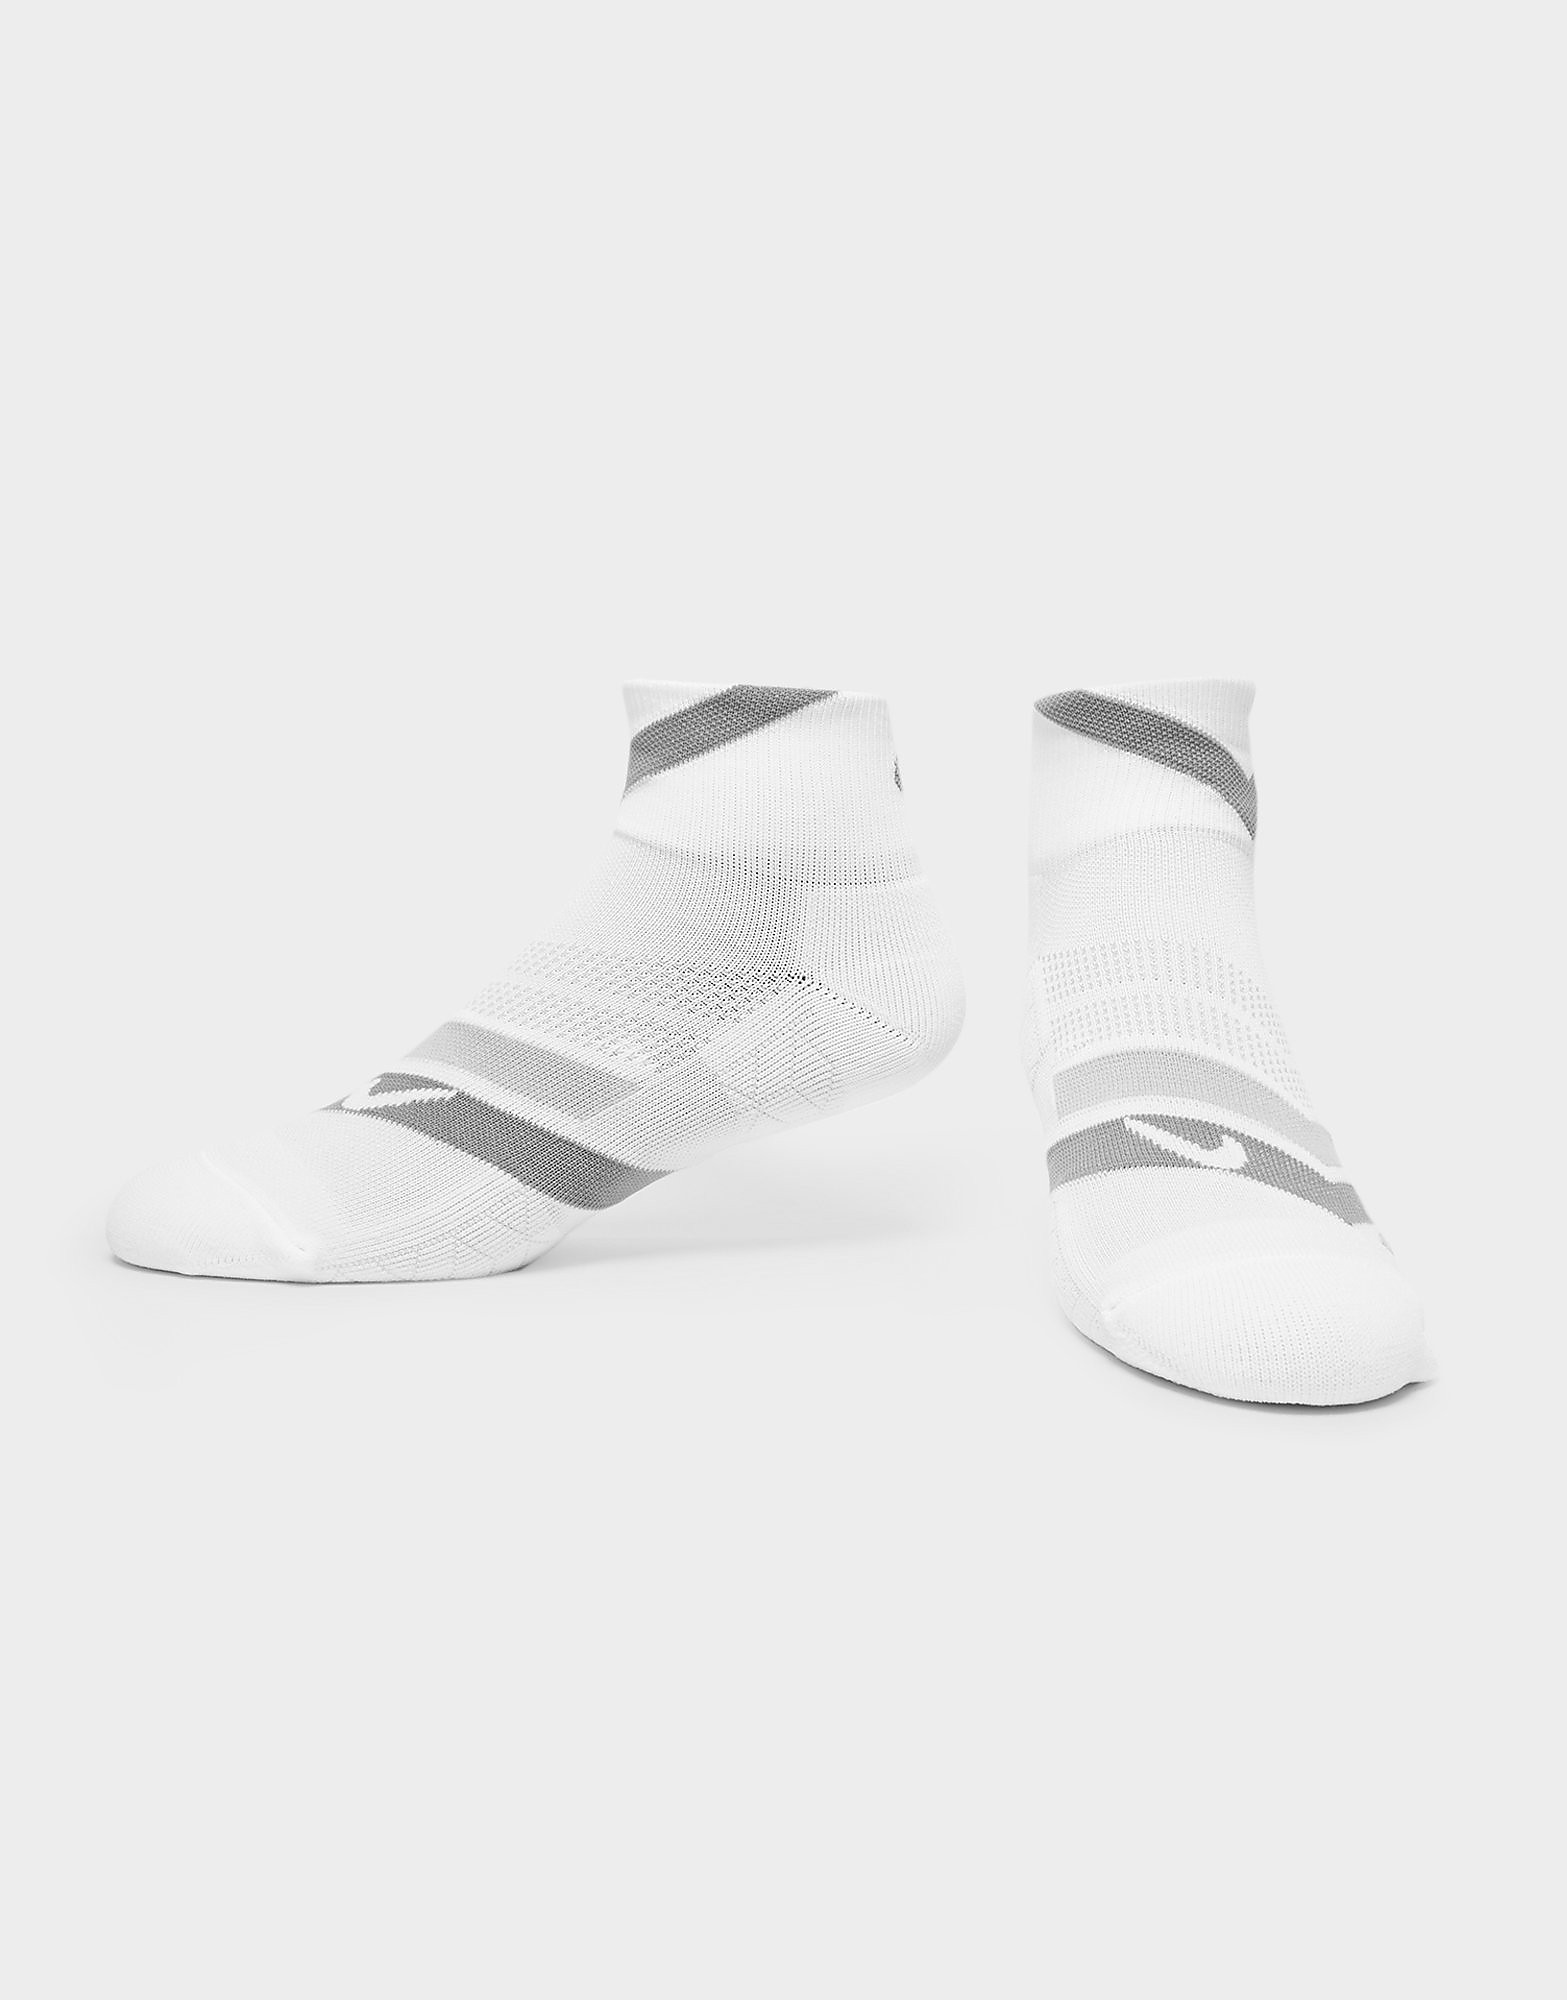 Nike Chaussettes Running Homme